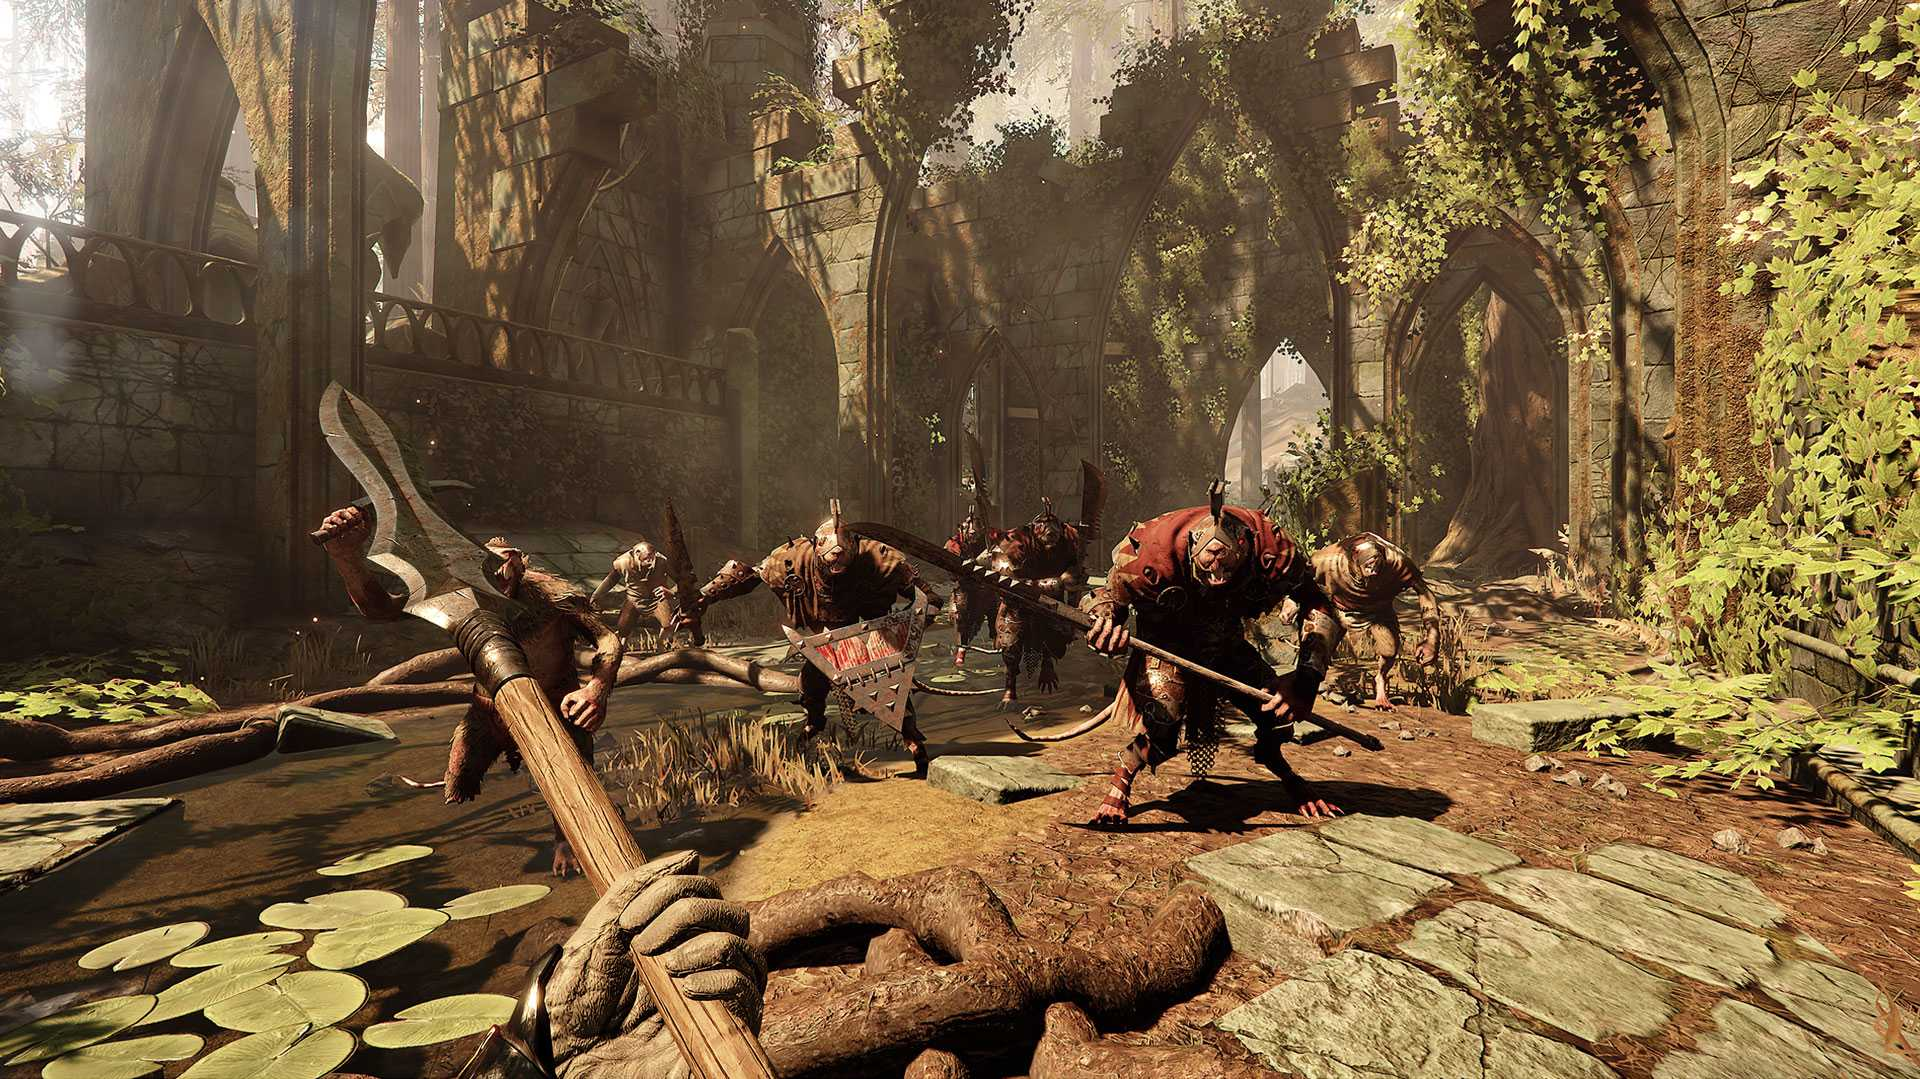 Download: AMD-Grafiktreiber 18.6.1 mit Performance-Plus in Warhammer Vermintide 2